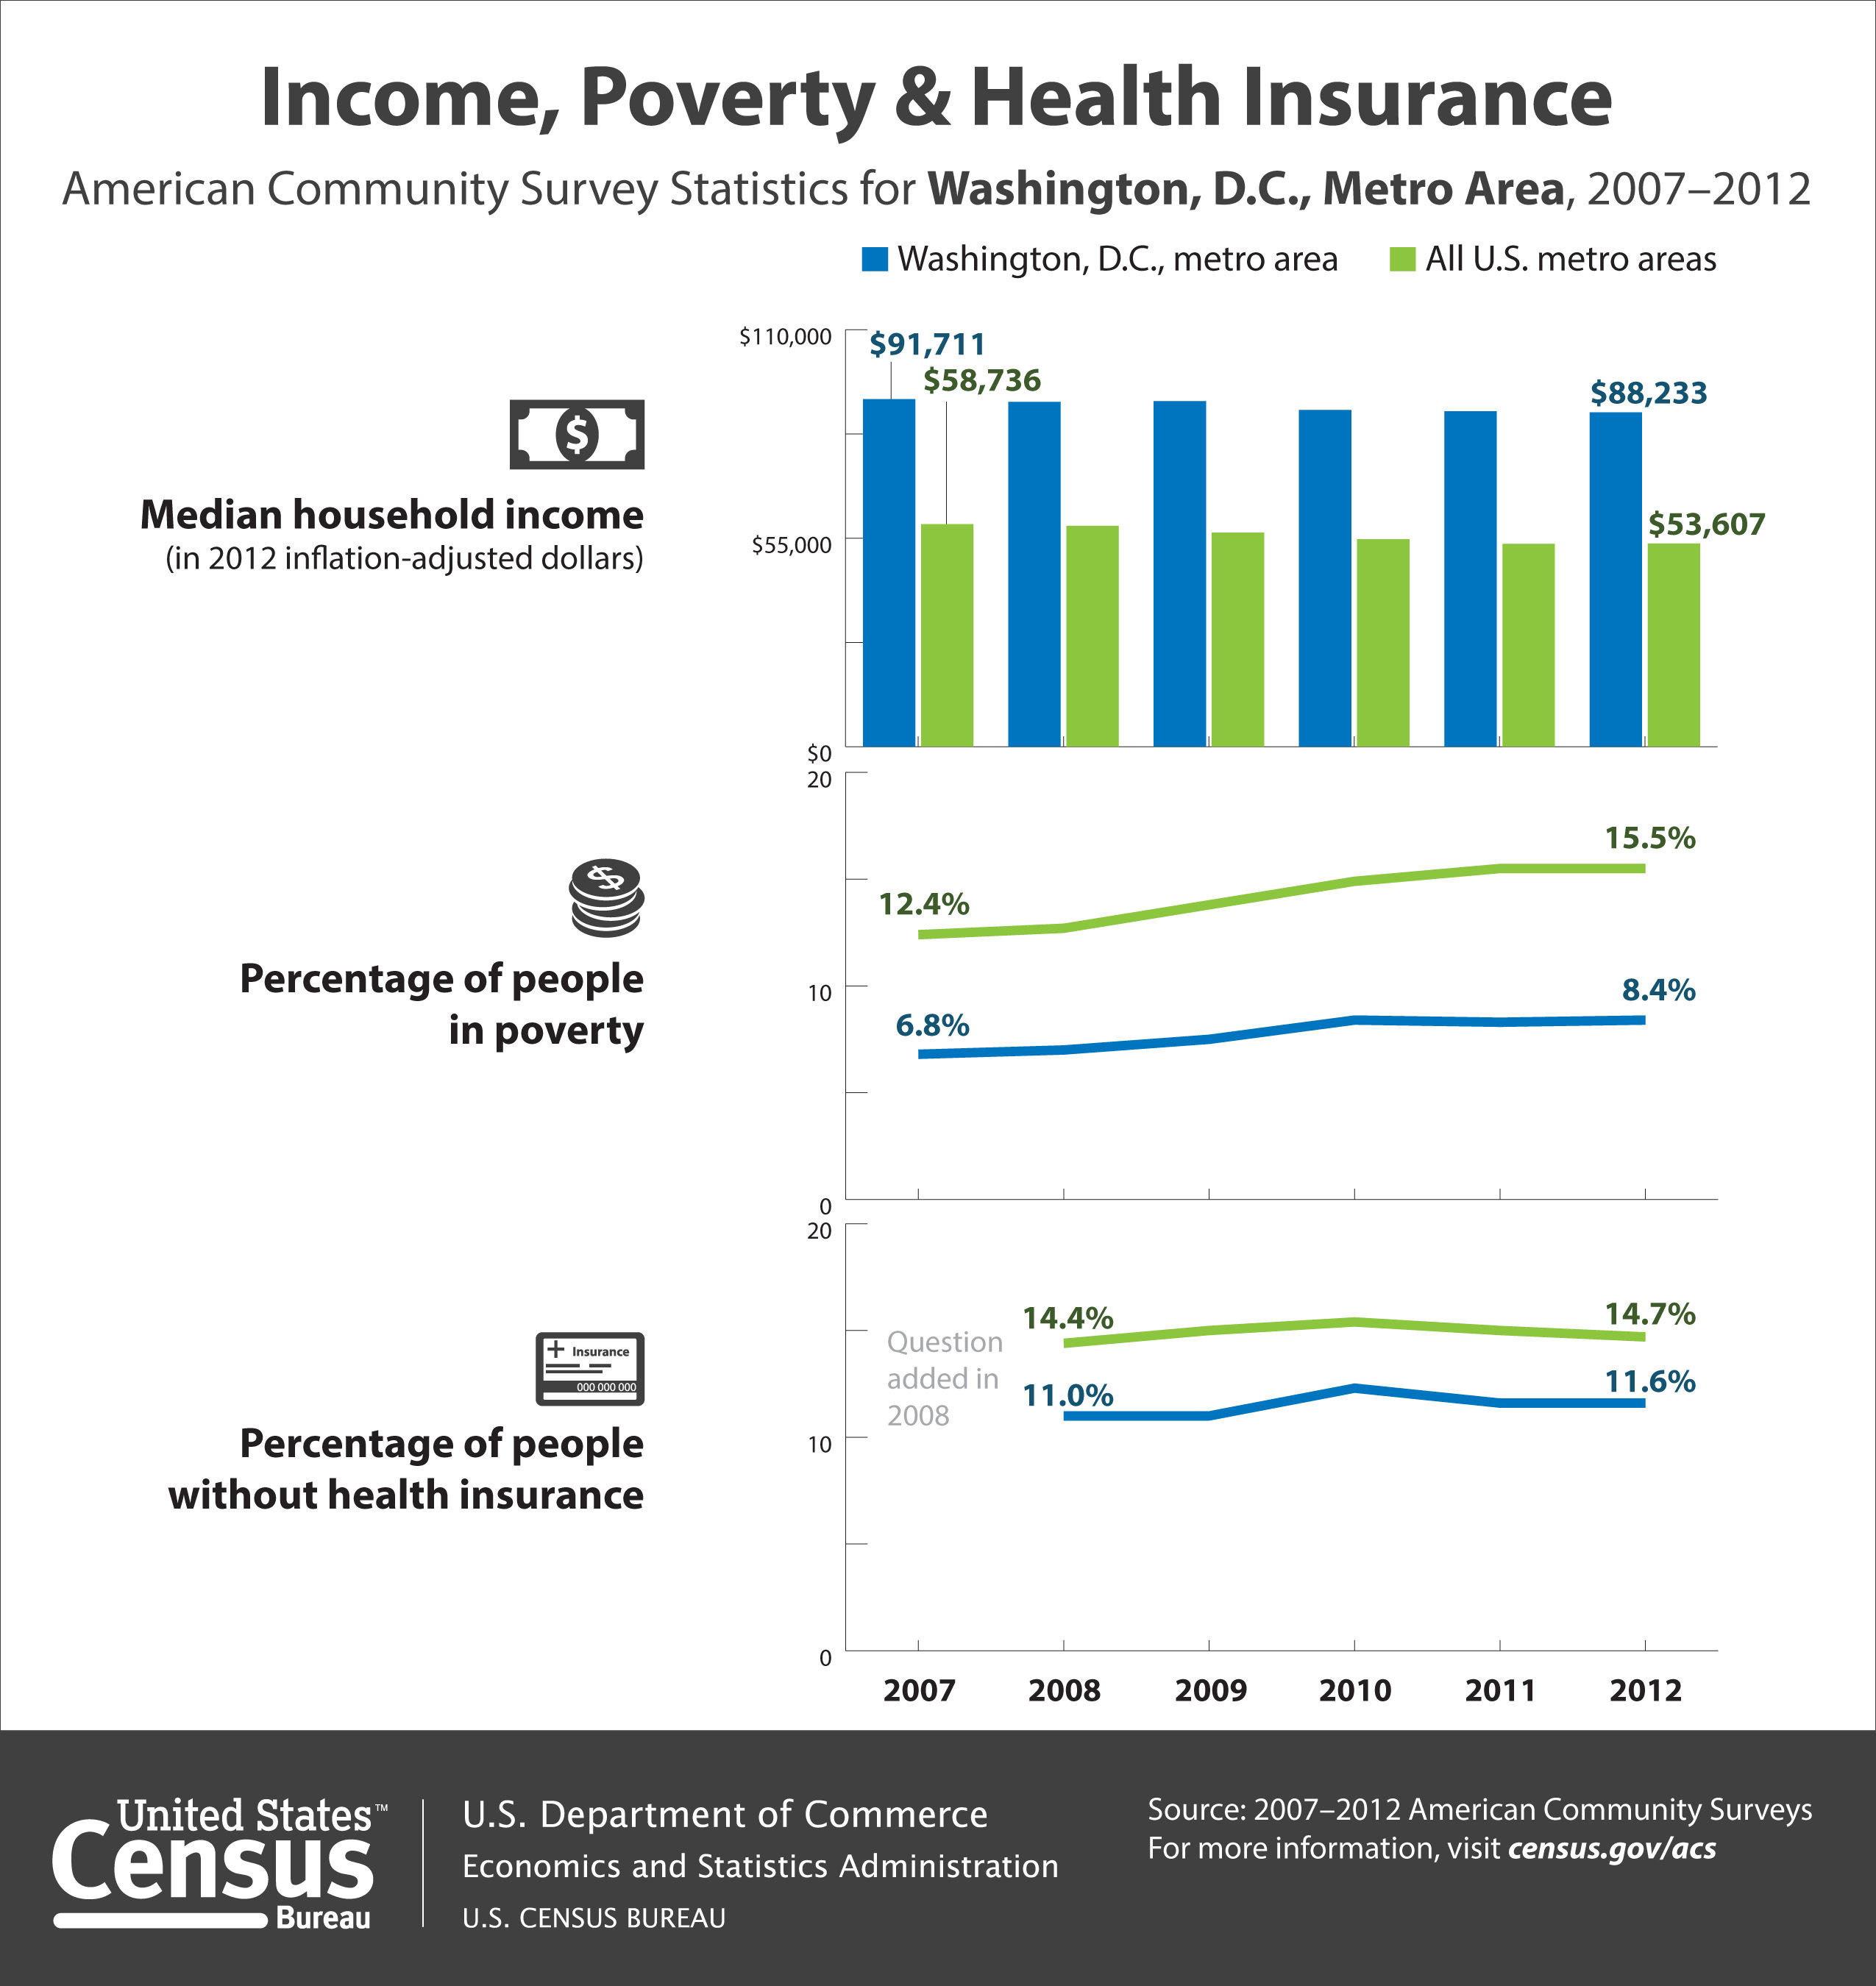 According to the Census Bureau's 2012 American Community Survey, the median household income in the Washington metro area was $88,233 in 2012, which was not statistically different from $88,505 in 2011. In addition, 8.4 percent of people in the Washington area were in poverty in 2012, which was not statistically different from 8.3 percent in 2011. In 2012, 11.6 percent of the area's population lacked health insurance coverage, unchanged from 2011. (PRNewsFoto/U.S. Census Bureau) (PRNewsFoto/U.S. CENSUS BUREAU)